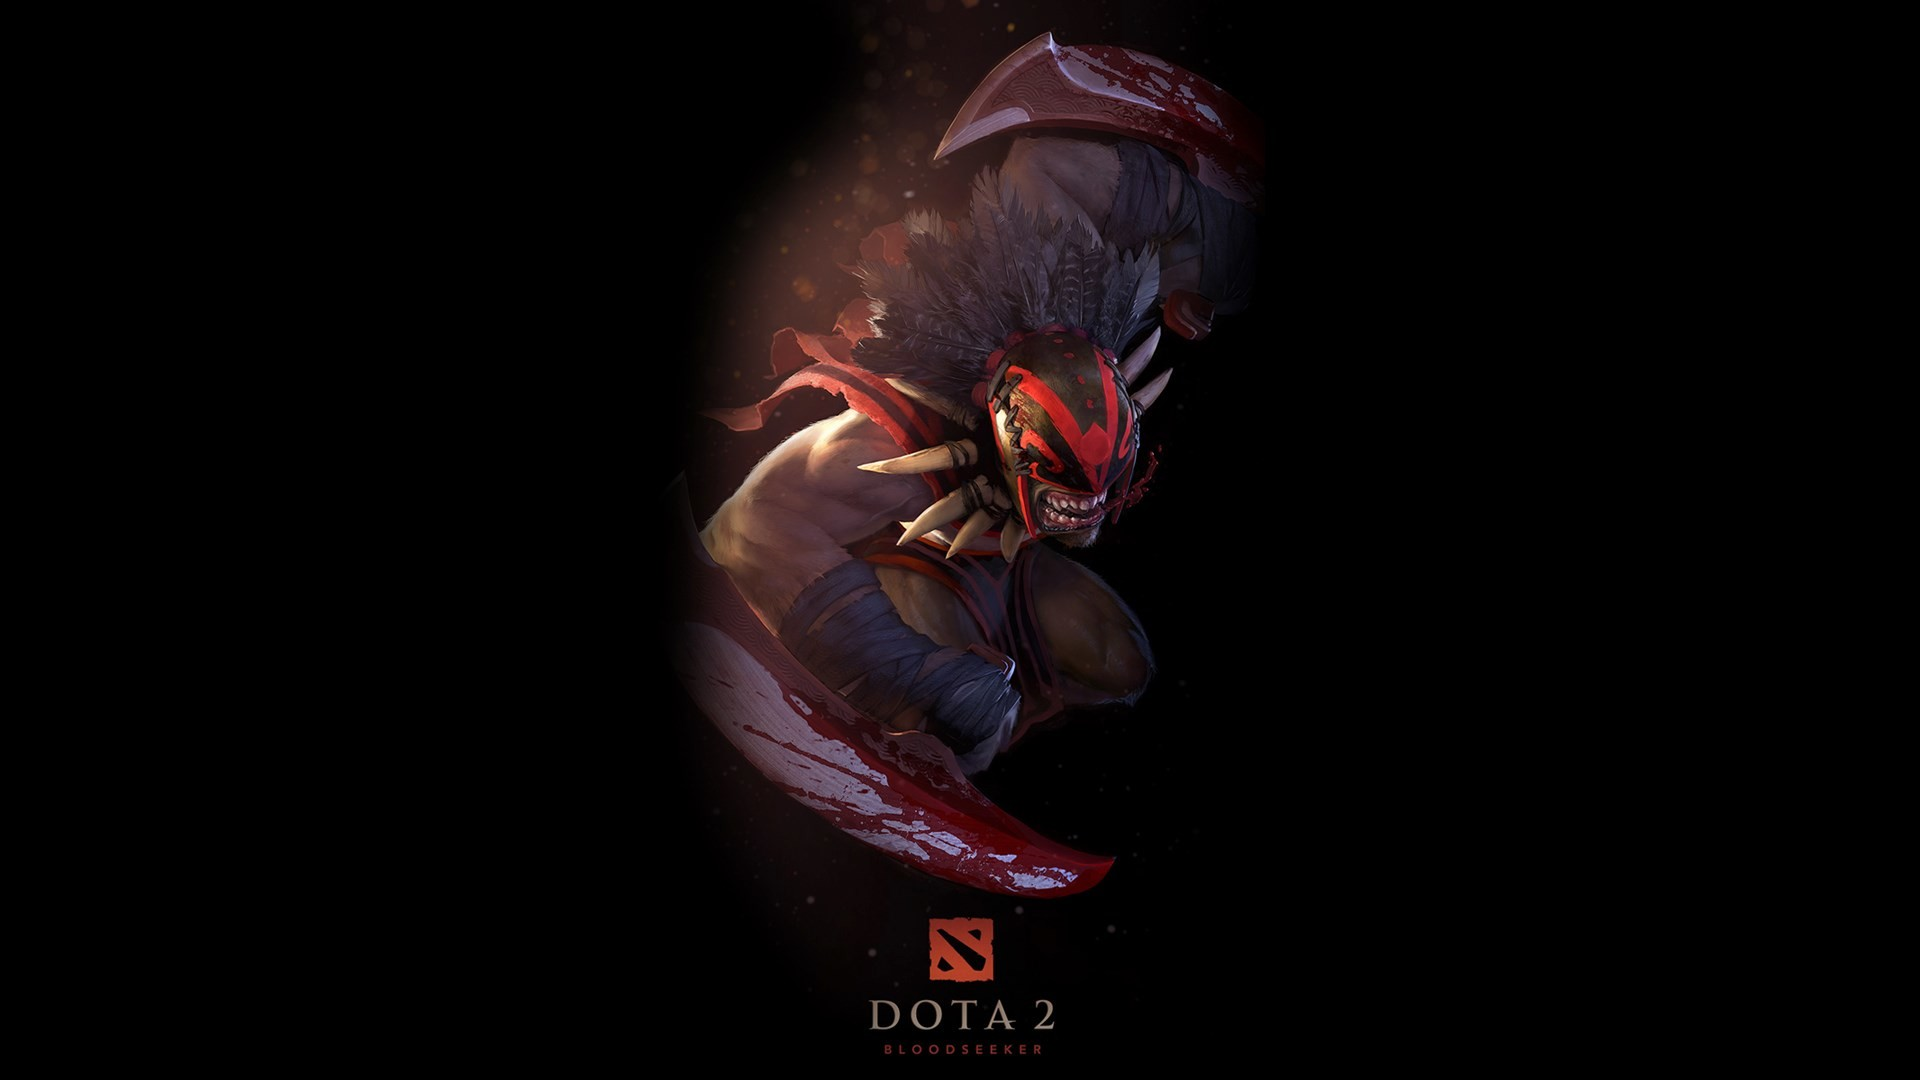 dota 2 live wallpaper for pc page 4 everything you should know